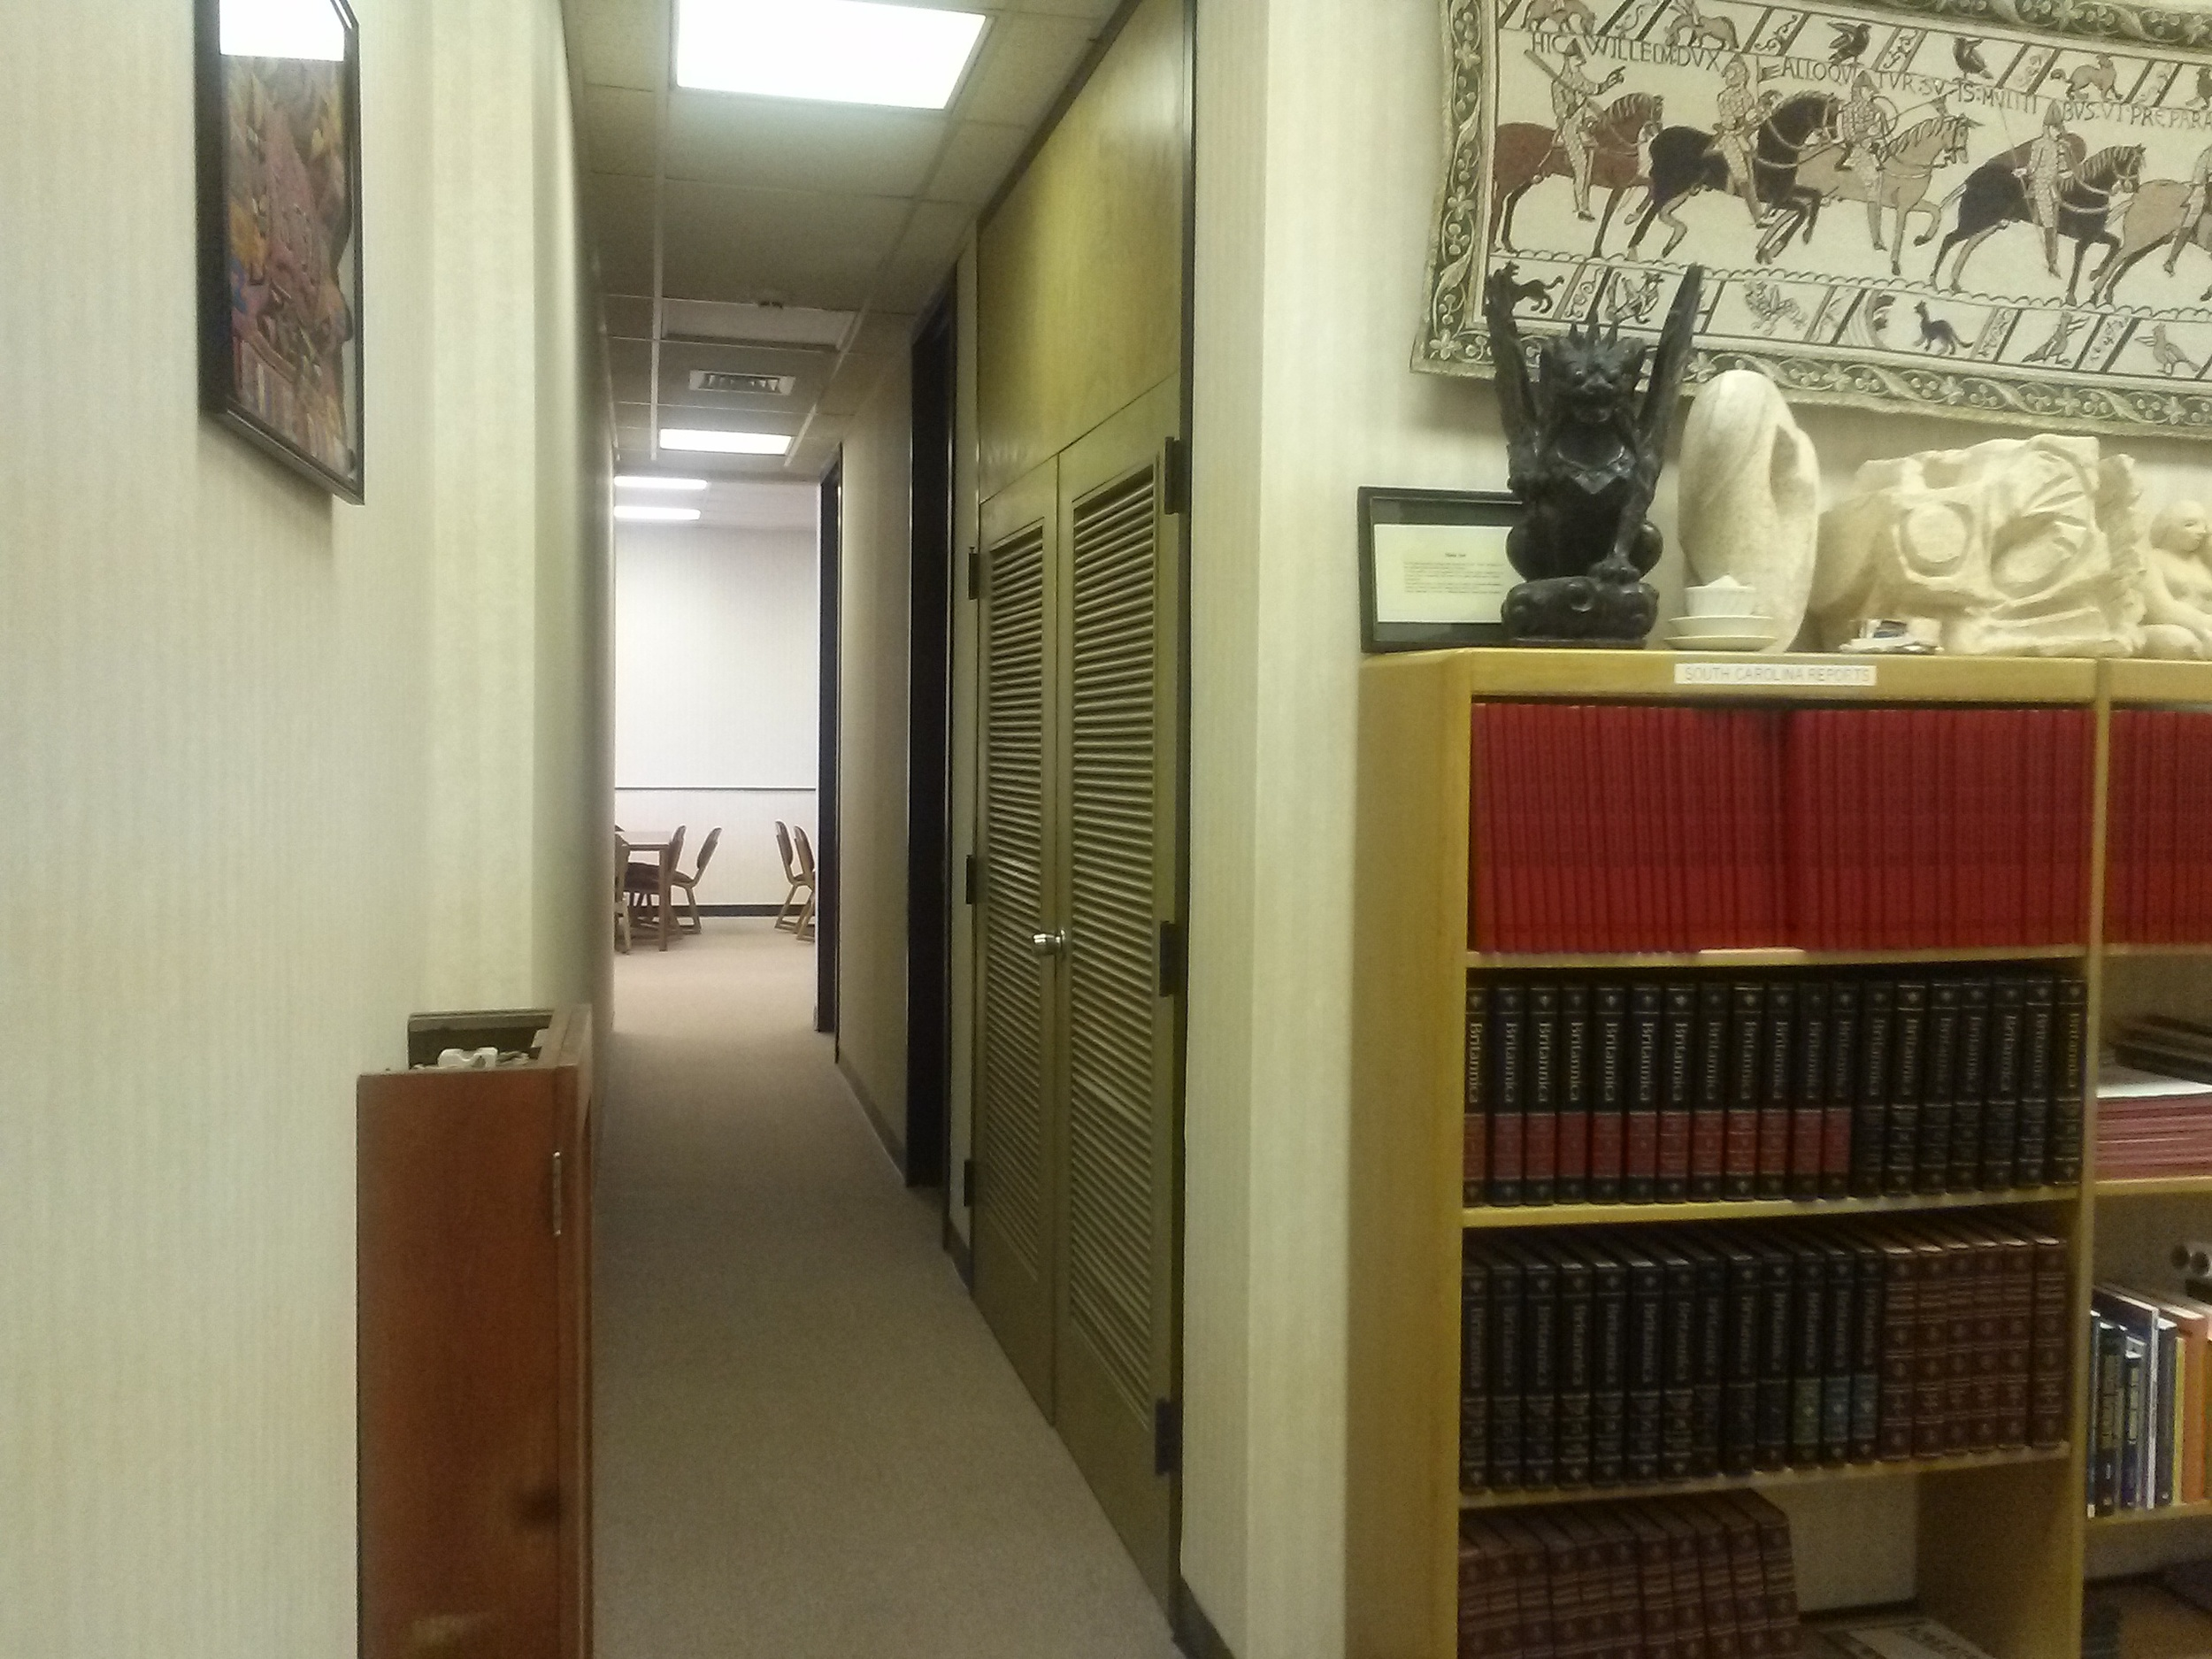 Did you know that there is a hallway that connects the offices downstairs in the library to the study tables on the right side of the entrance?